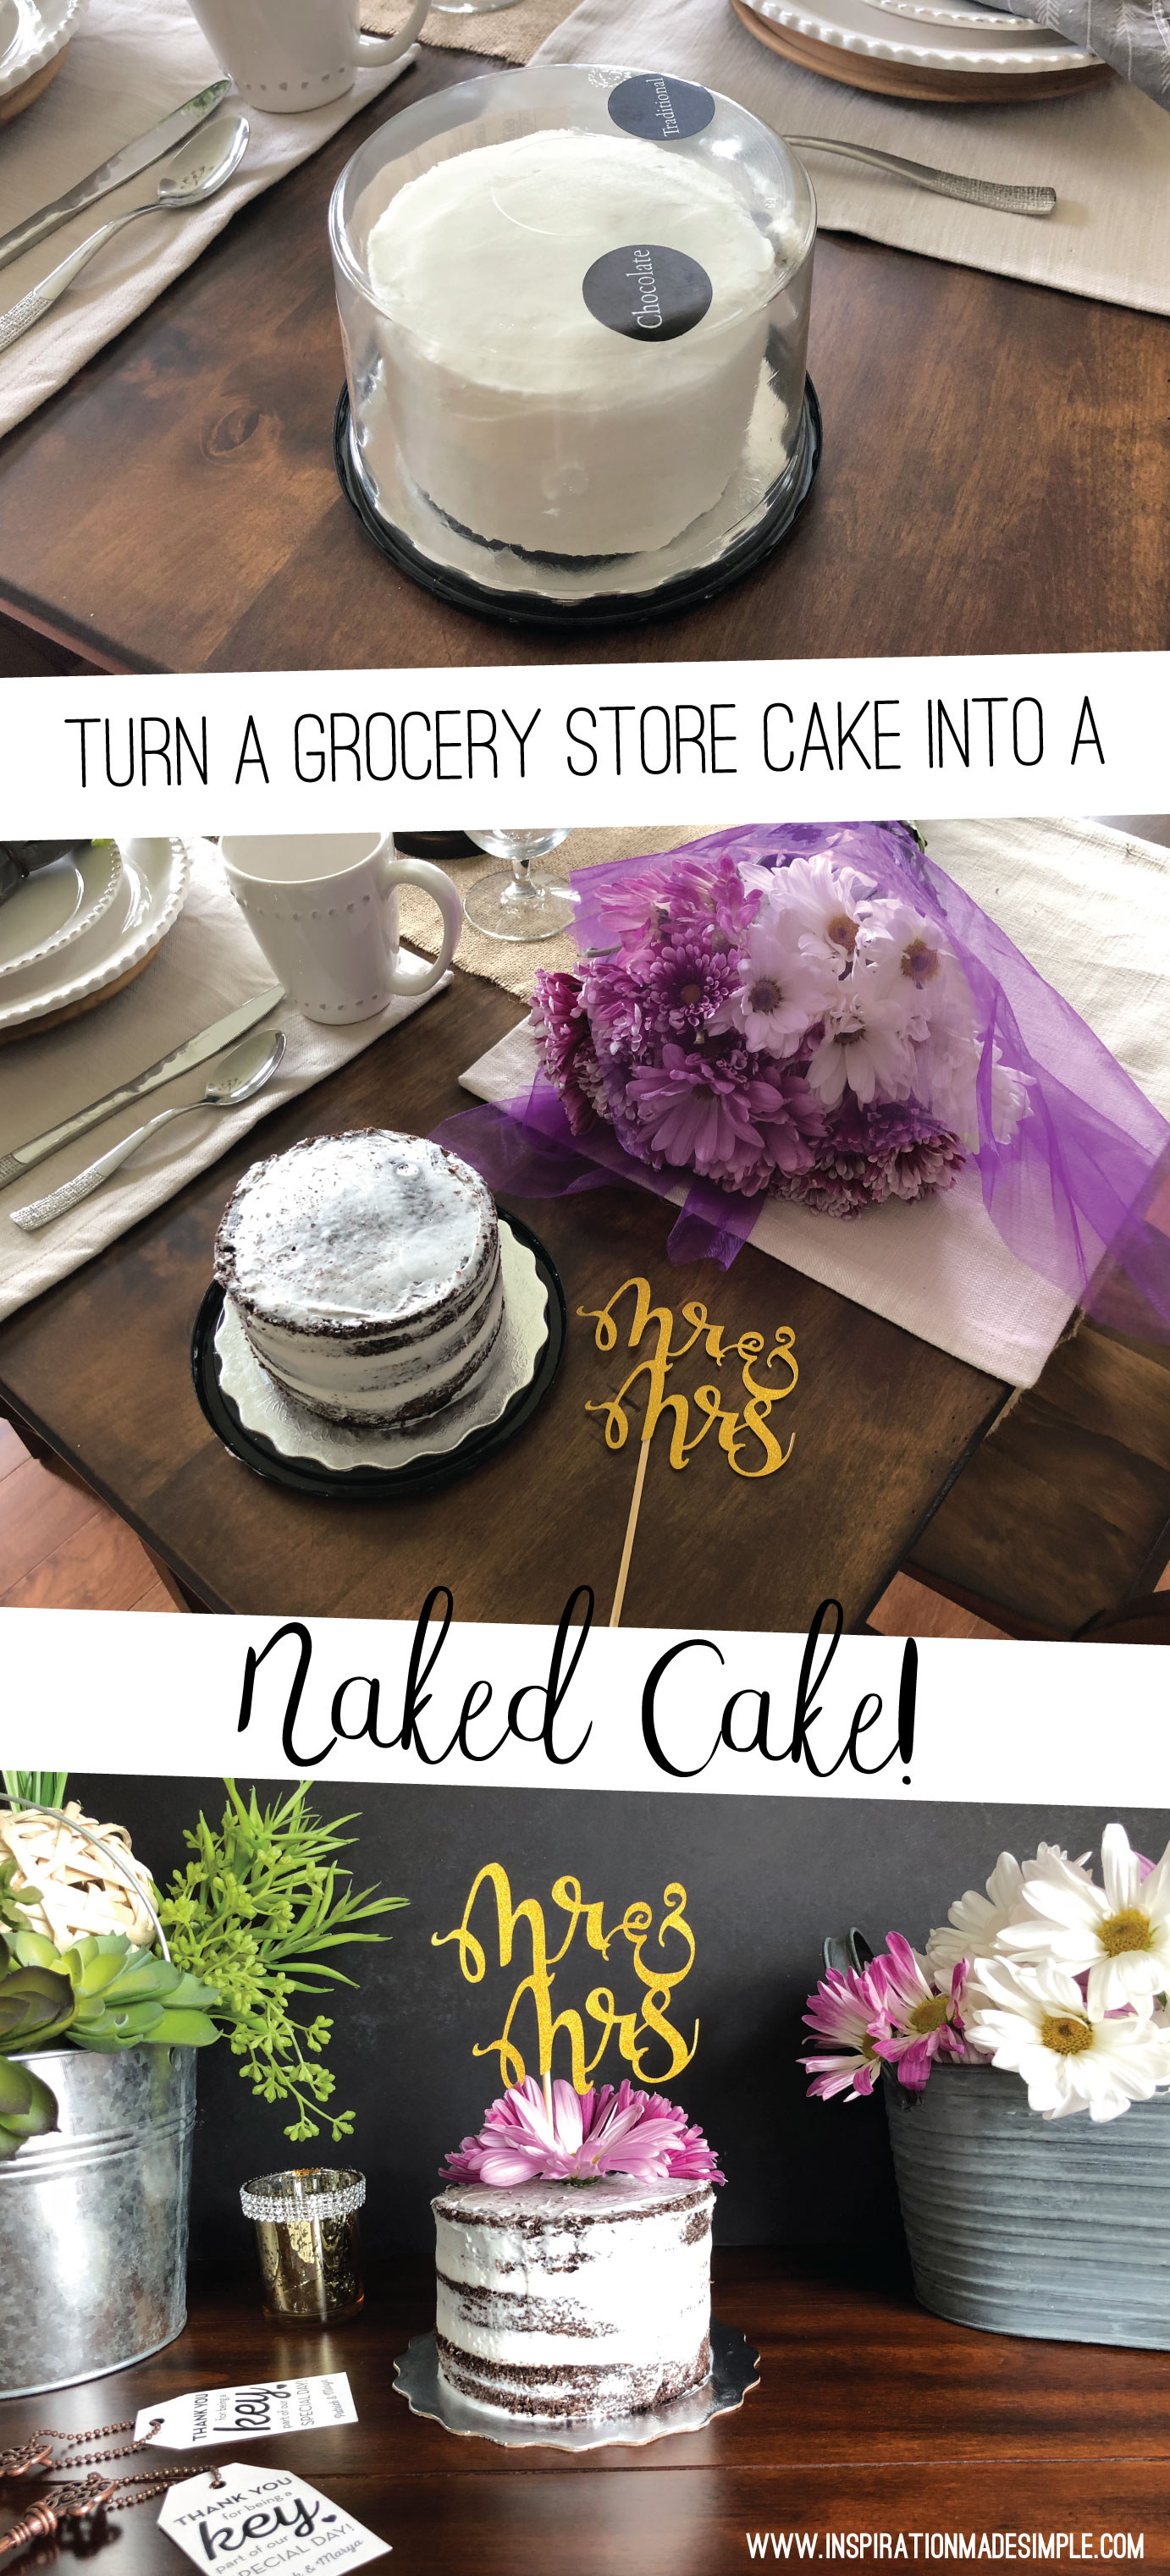 Turn a grocery store cake into a naked cake!